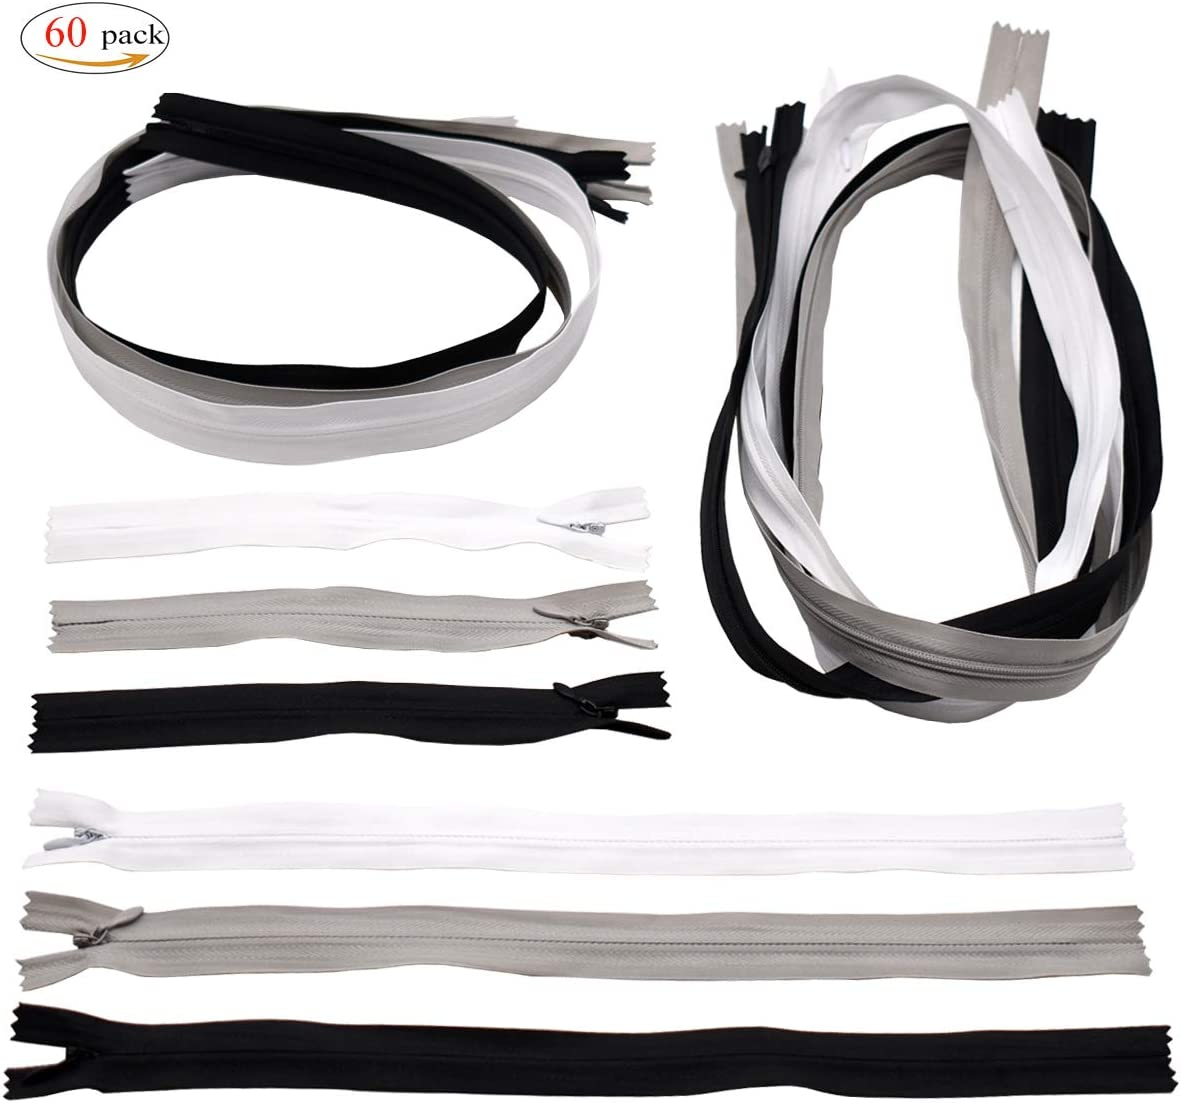 Black White Grey Nylon Coil Zippers,Xiuyer 60 Pieces Assorted Colors Sewing Zippers 16cm 30cm 60cm 120cm Replacement Zips for DIY Making Clothes Purse Handbags Cushions Crafts